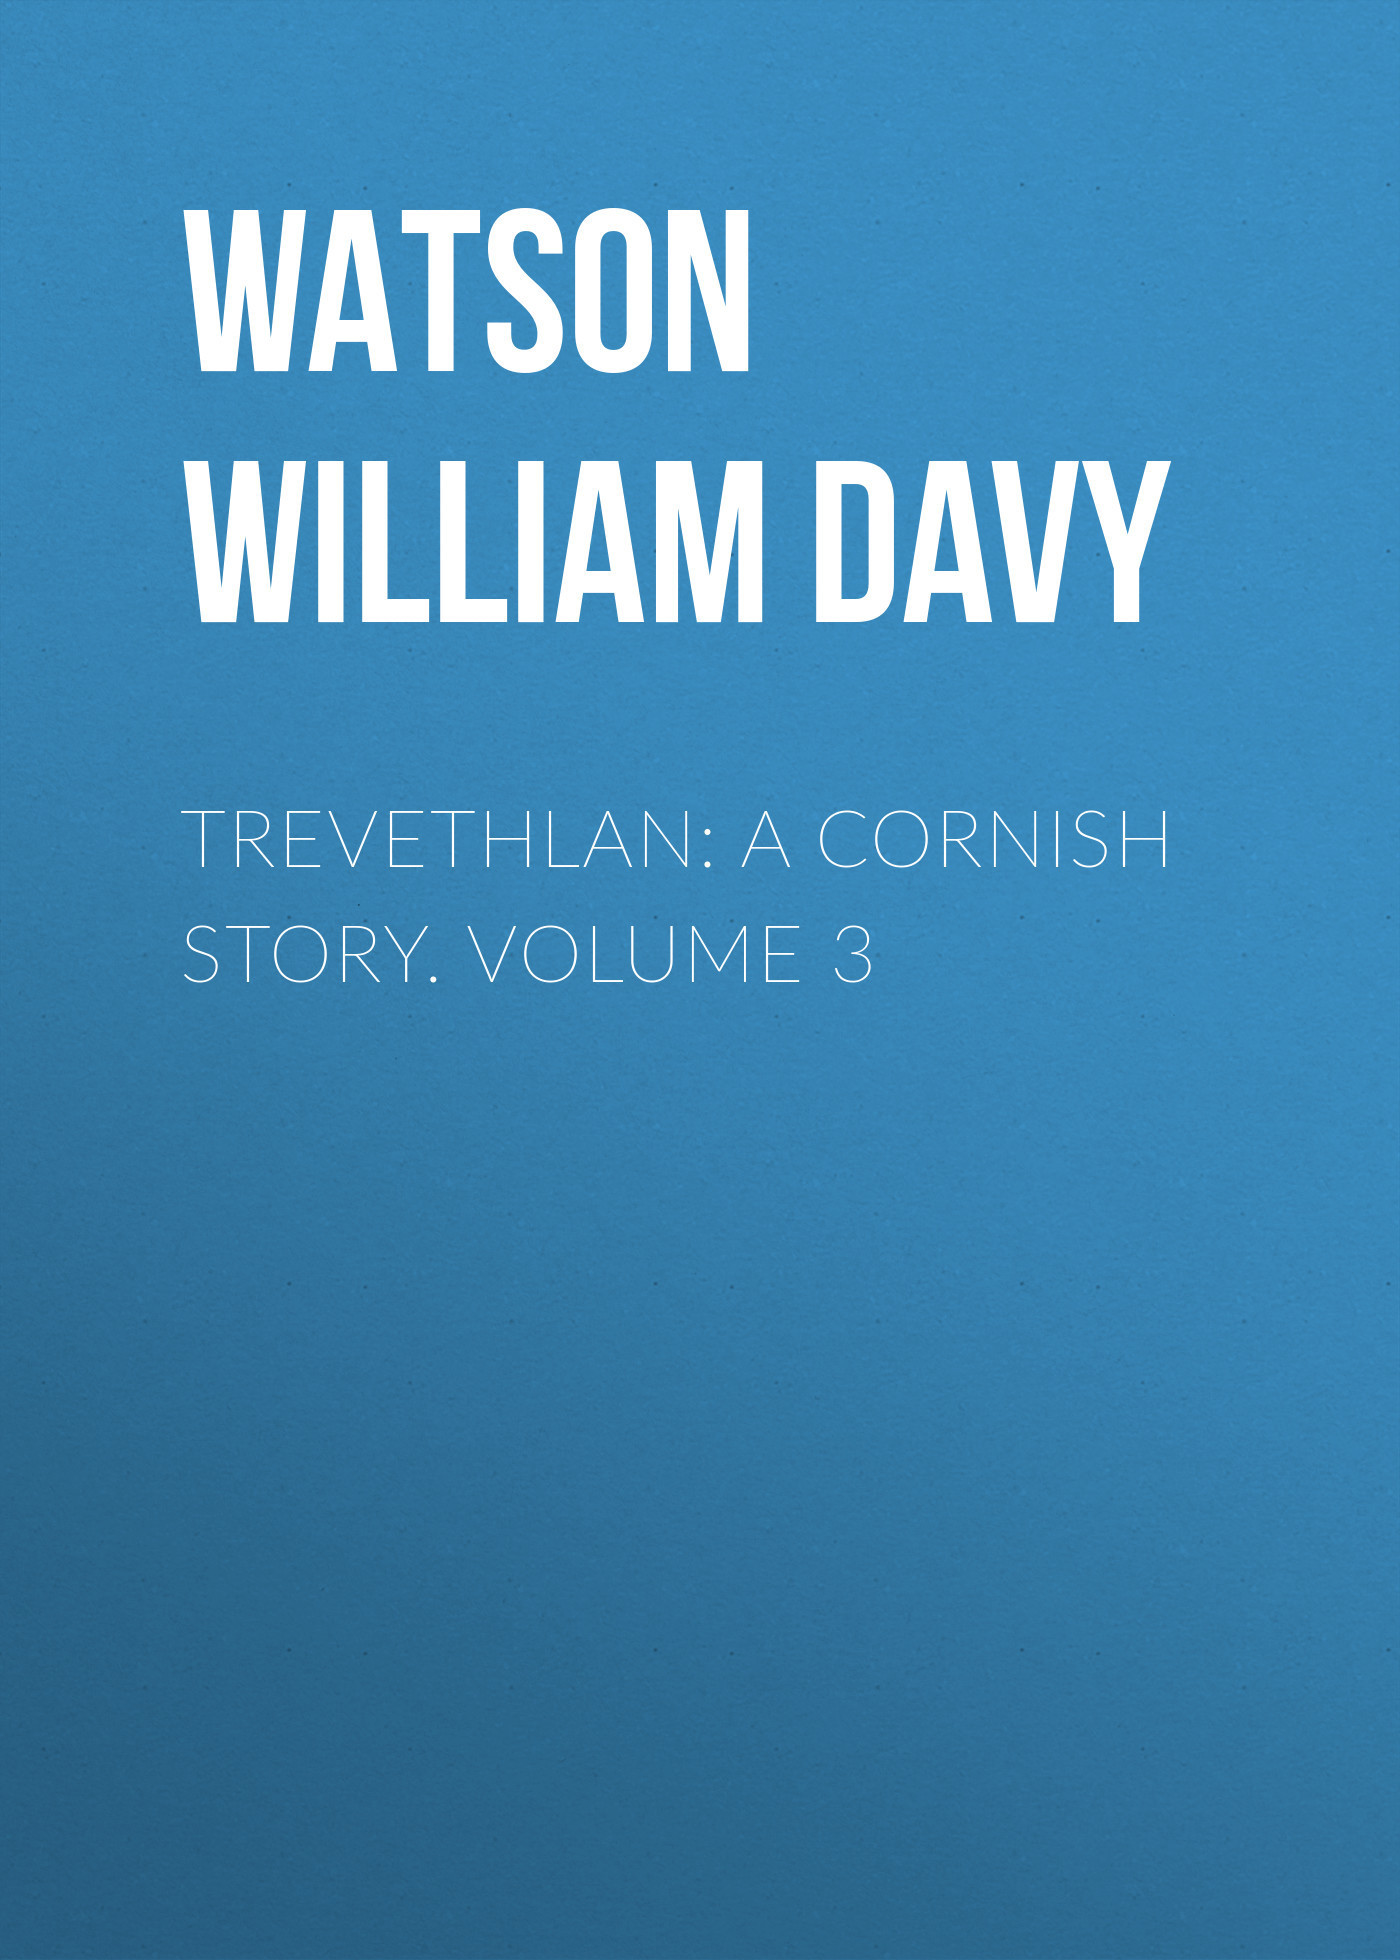 Watson William Davy Trevethlan: A Cornish Story. Volume 3 watson william davy trevethlan a cornish story volume 3